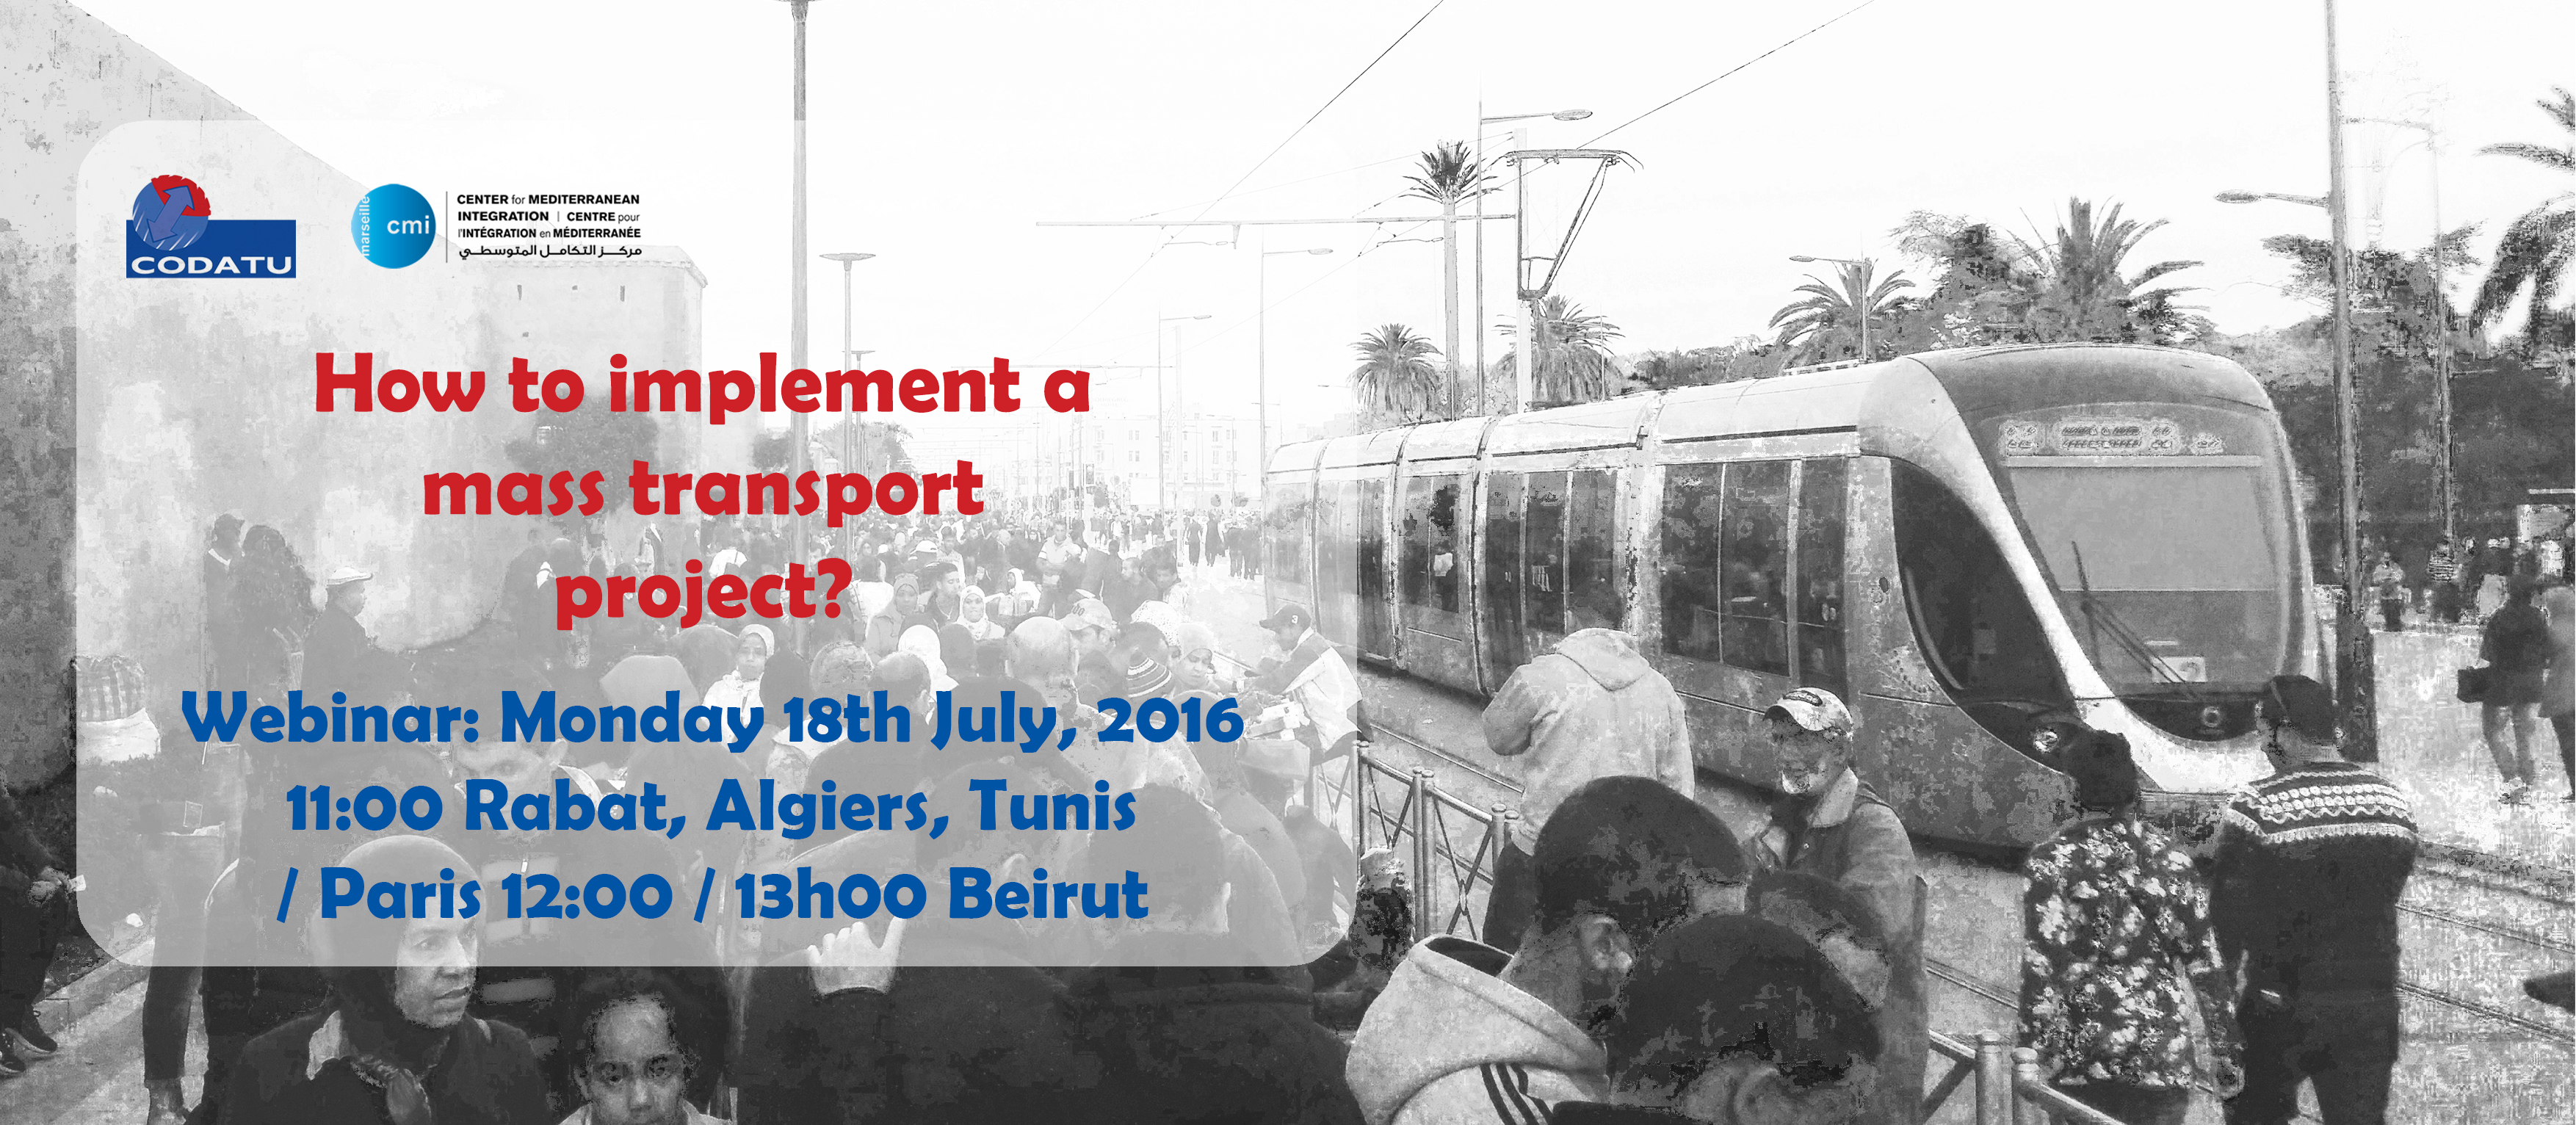 [WEBINAR in French] HOW TO IMPLEMENT A MASS TRANSPORT PROJECT ?